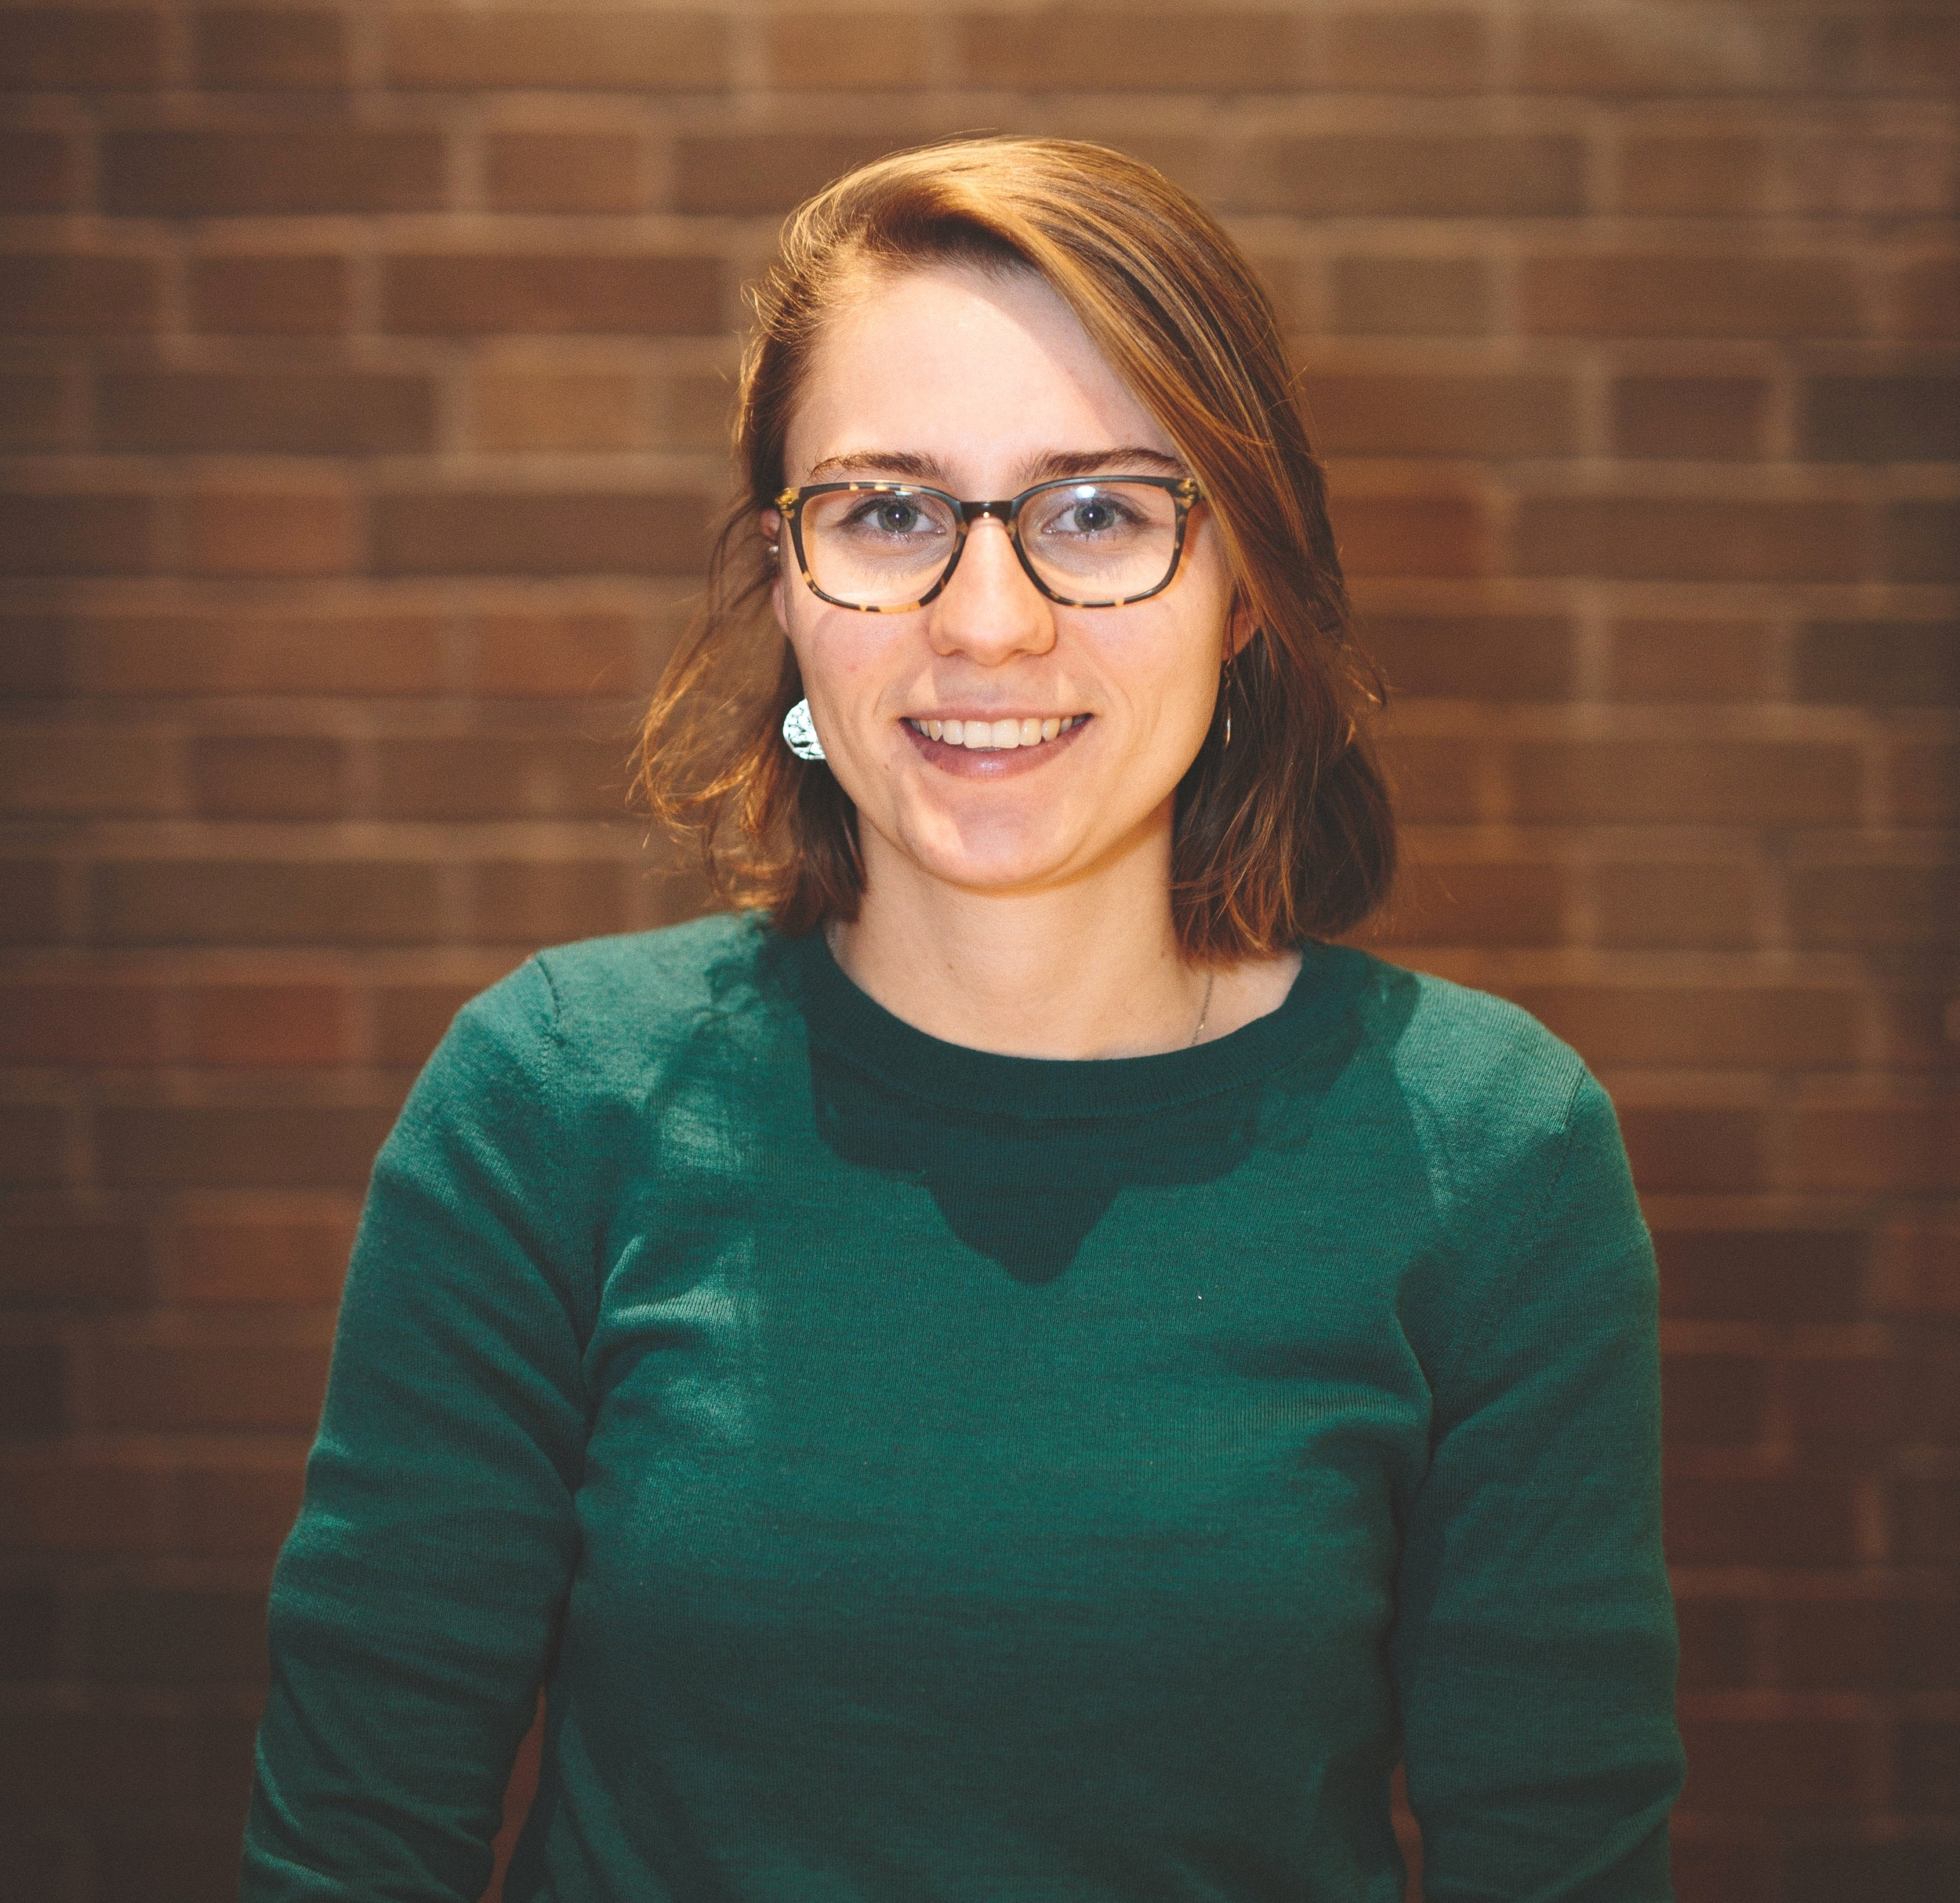 Alice Leclercq – Co-Creator & Editor-in-Chief   Alice Leclercq (pronounced 'a lease') is a recent McGill graduate with a double major in Psychology and Spanish. She likes memes, dreams, and is a founder of the empathy journal. She believes mental health is an issue that should gain more awareness and be addressed more directly, hence this journal!